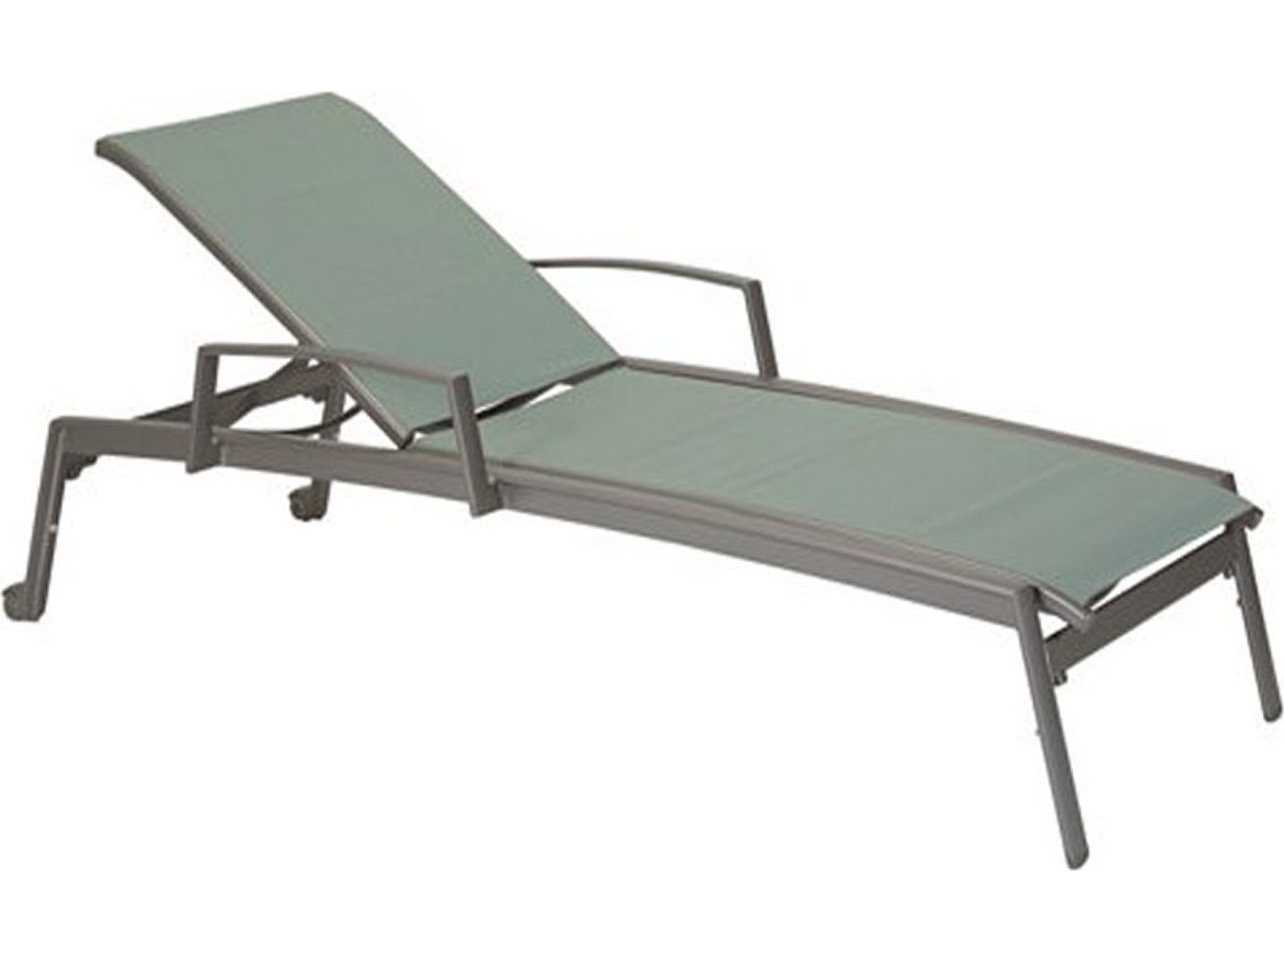 Tropitone elance relaxed sling aluminum chaise lounge with for Chaise lounge aluminum